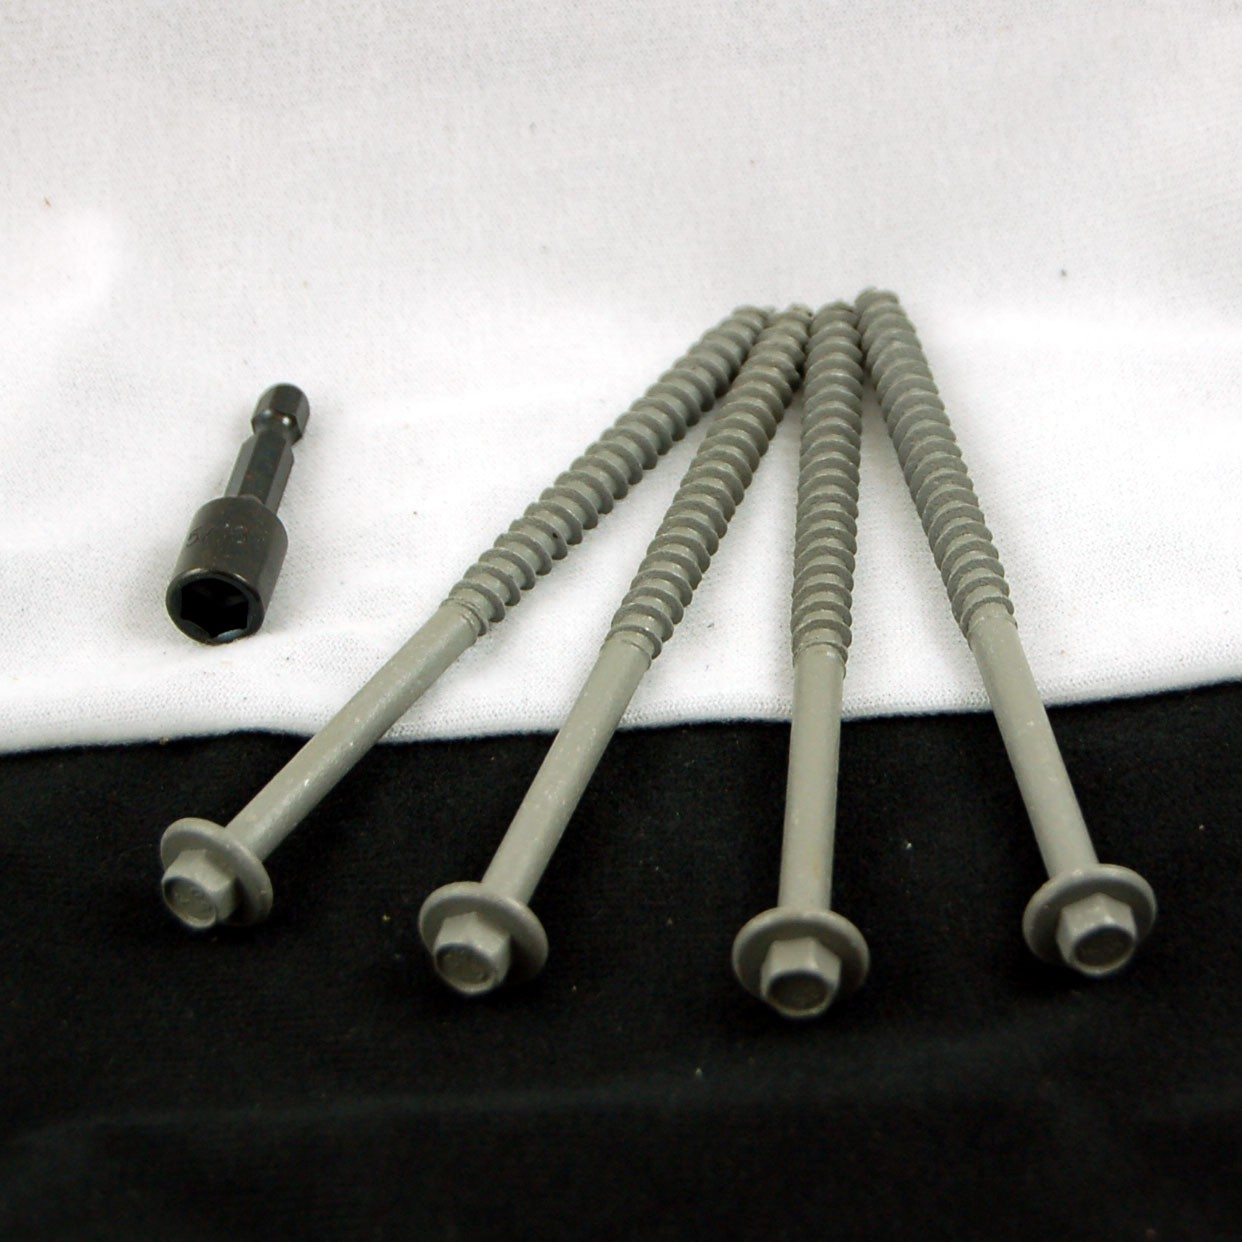 Ledgerlock screws